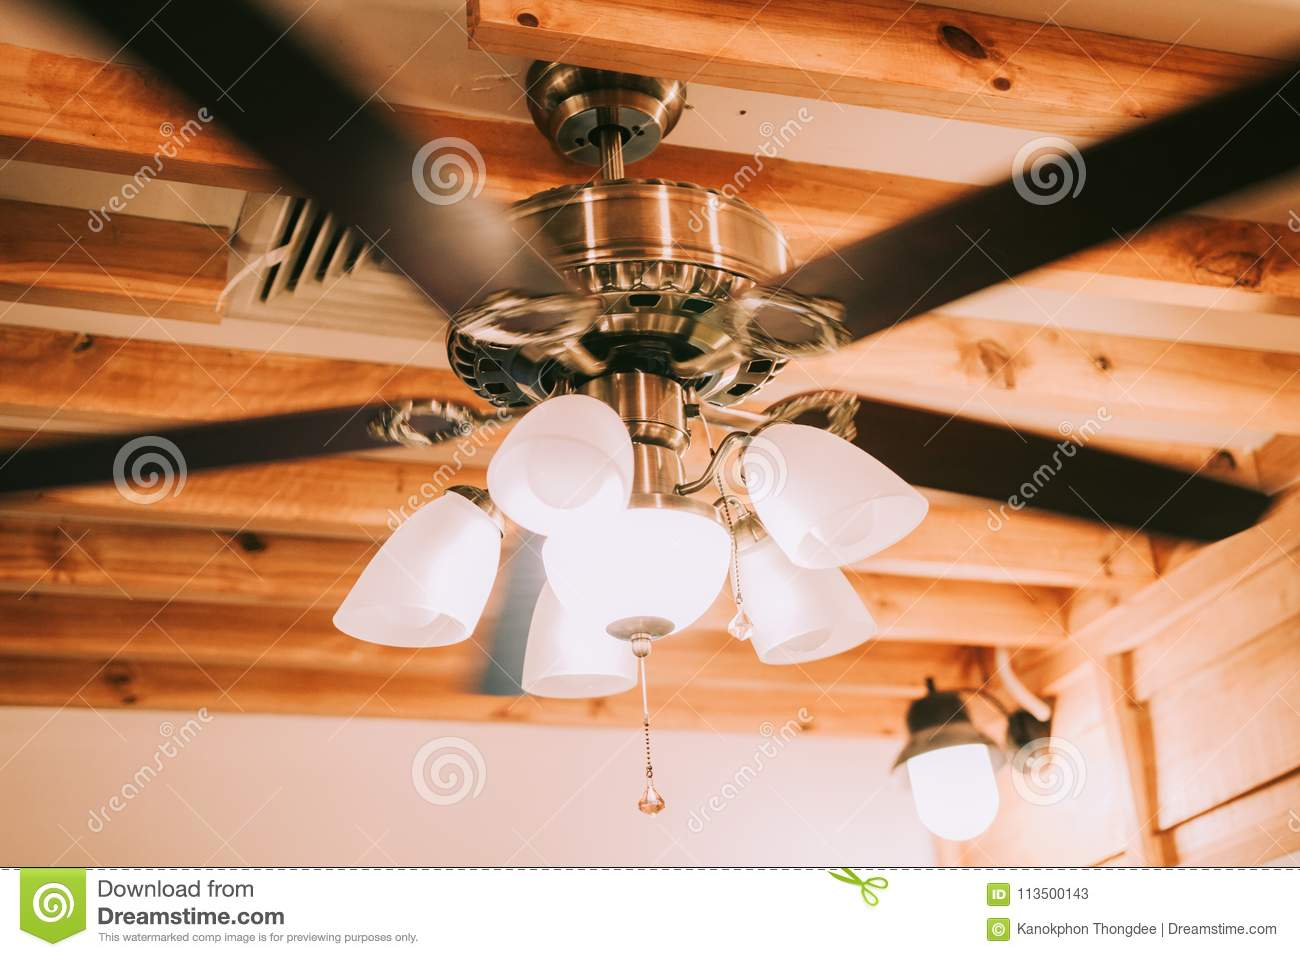 Luxury Ceiling Fan Beautiful Luxury Ceiling Fan Stock Image Image Of Dining Candle